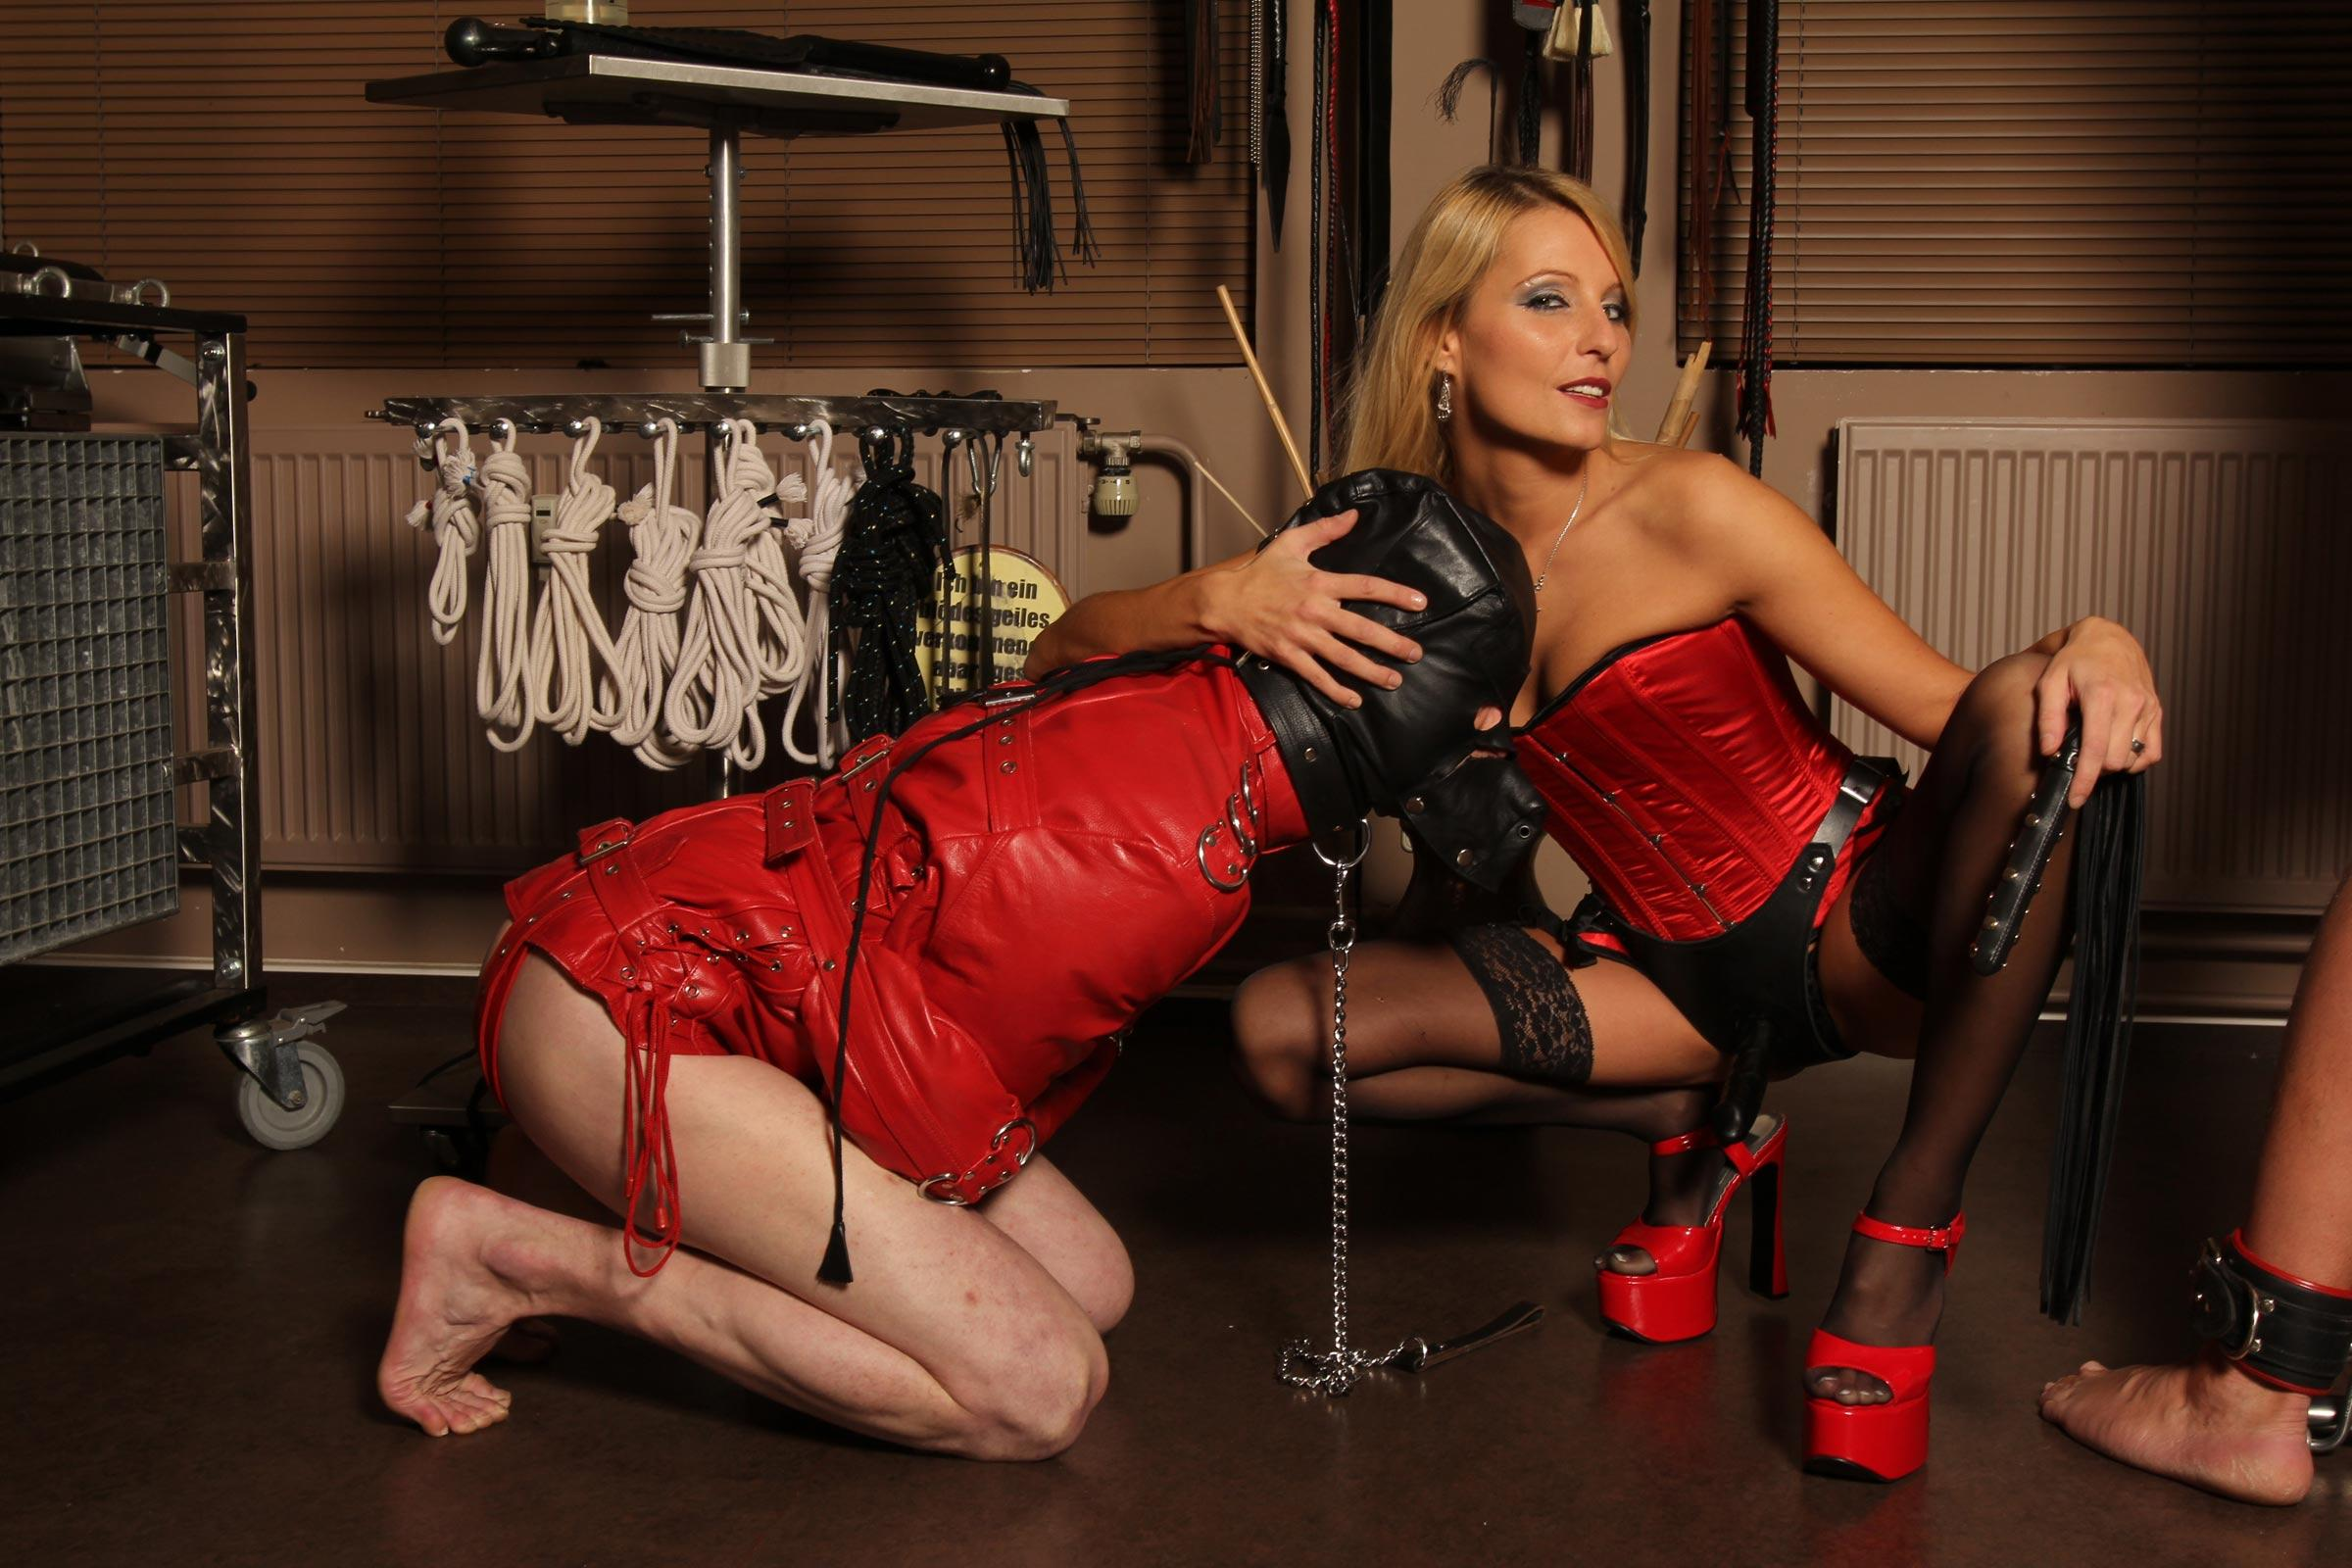 Question free oriental femdom galleries bdsm valuable message sorry